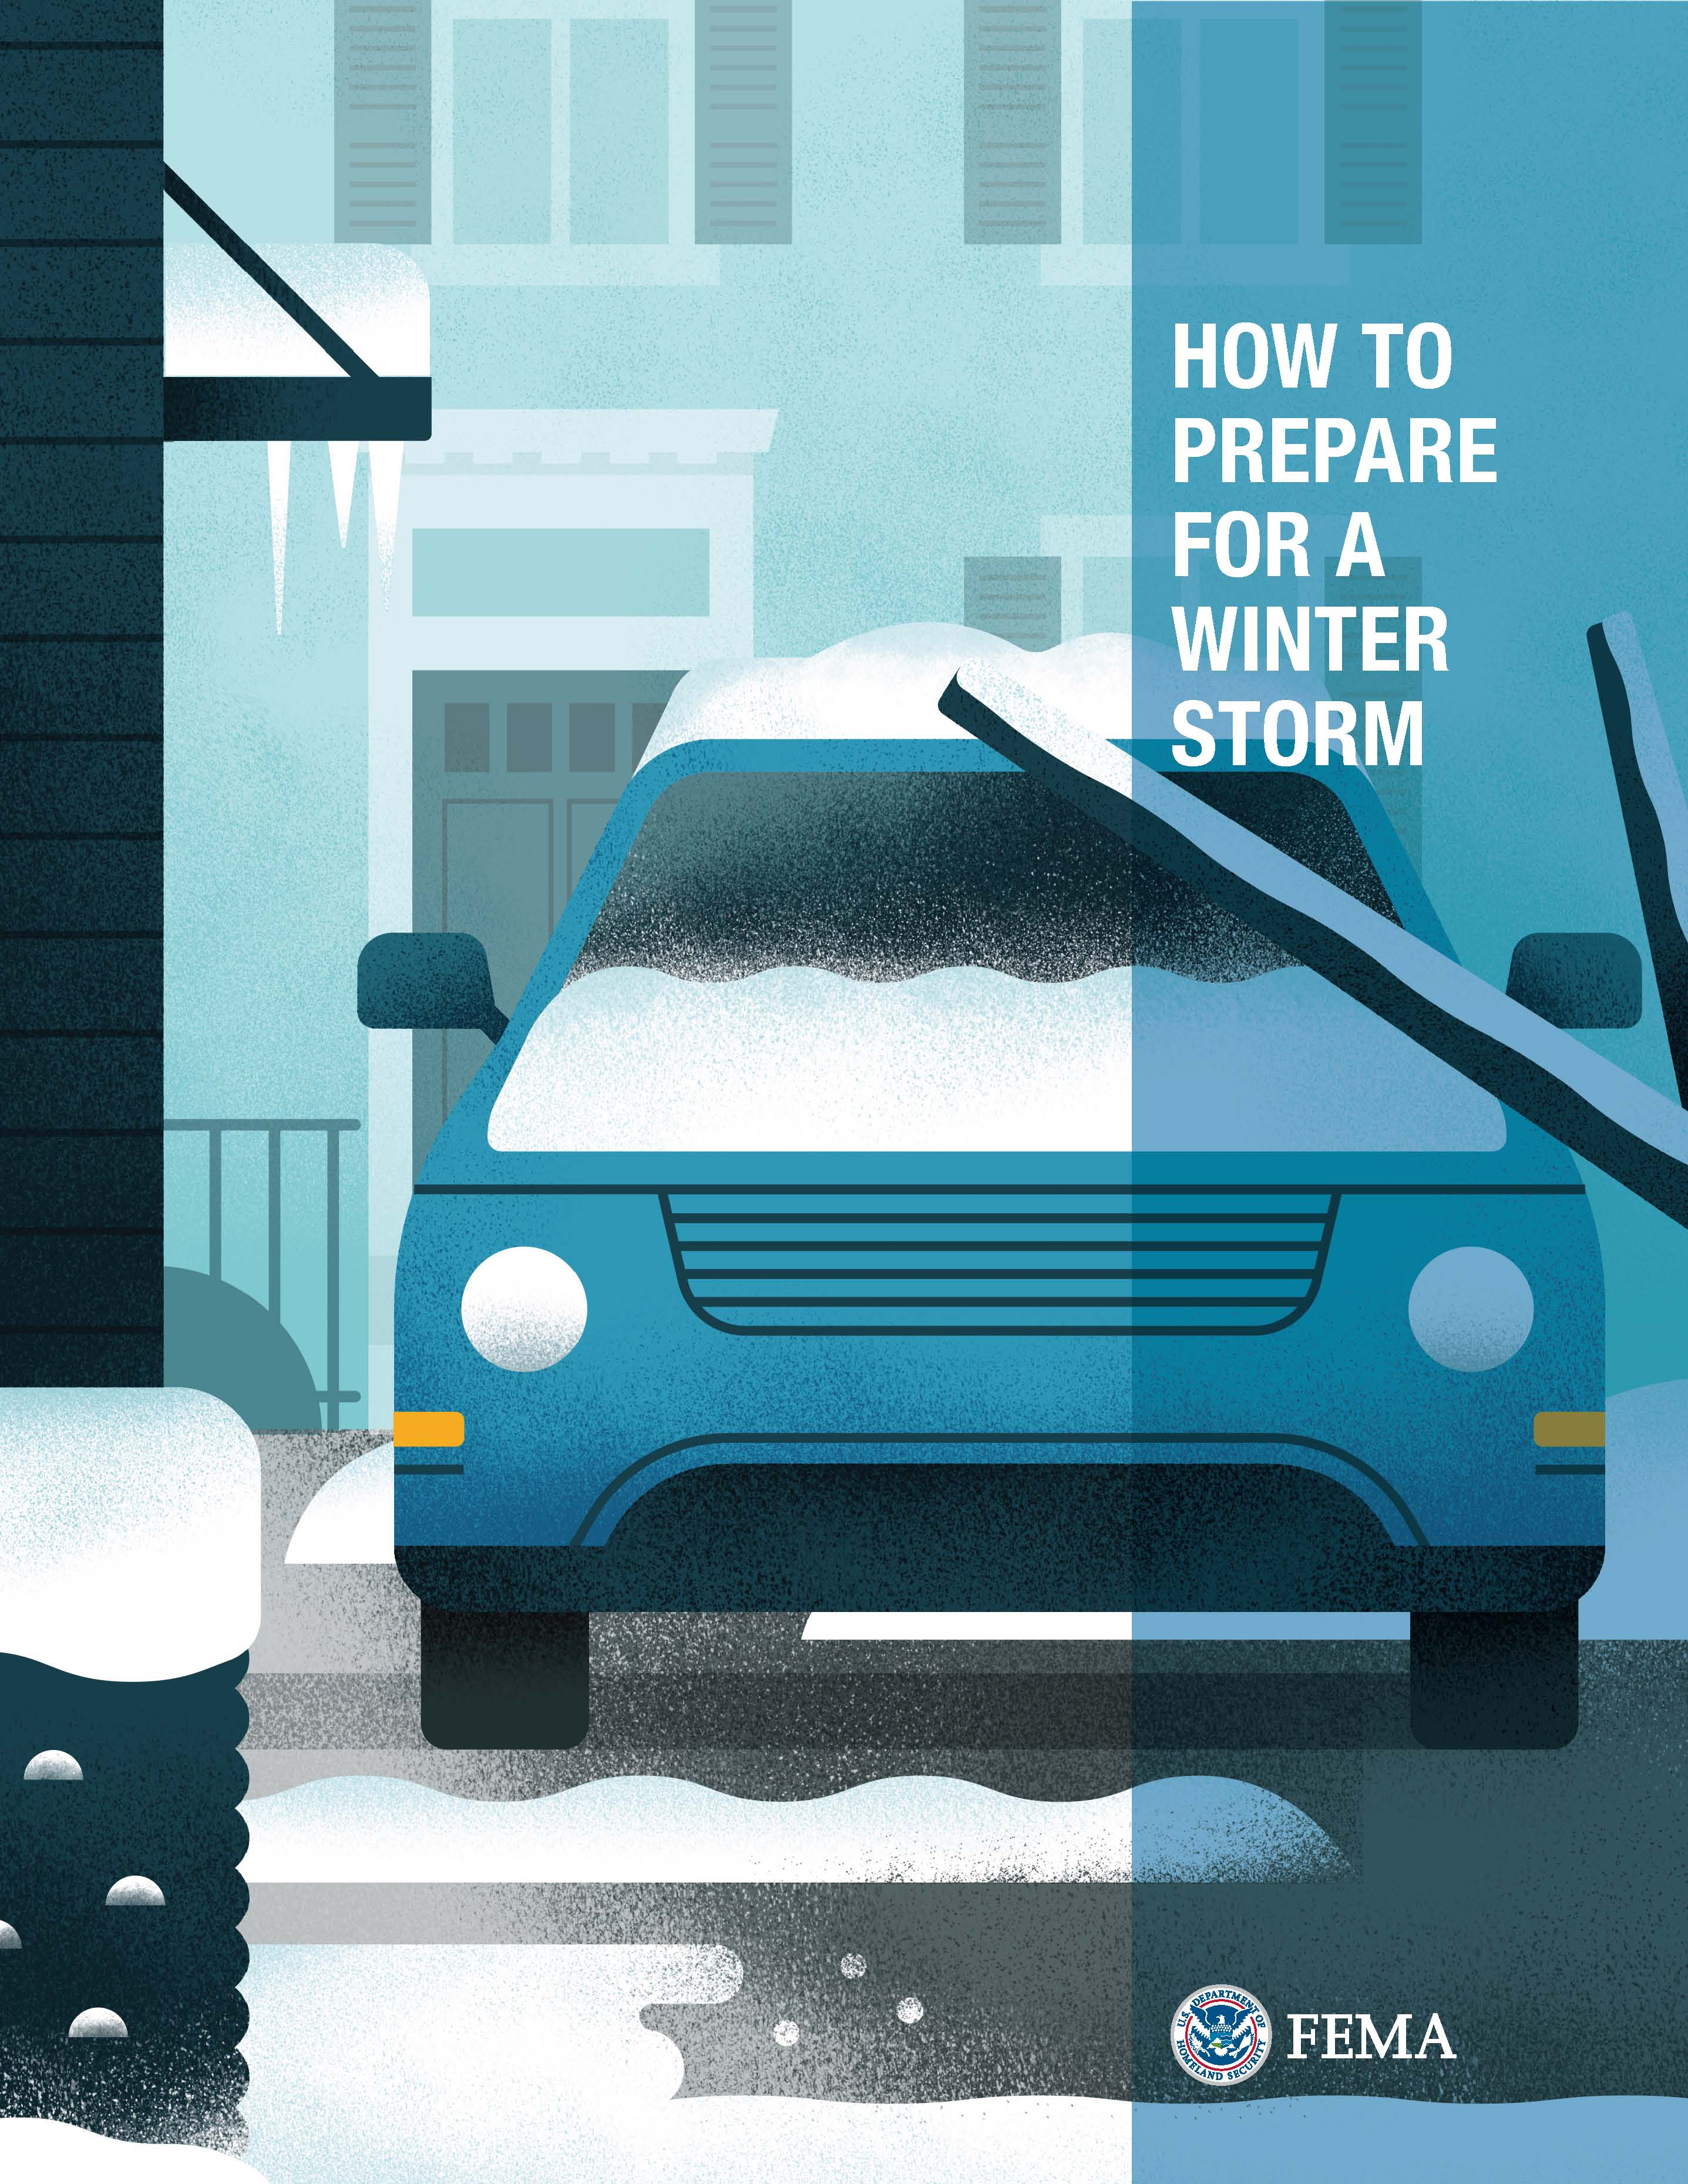 FEMA How to Prepare for a Winter Storm